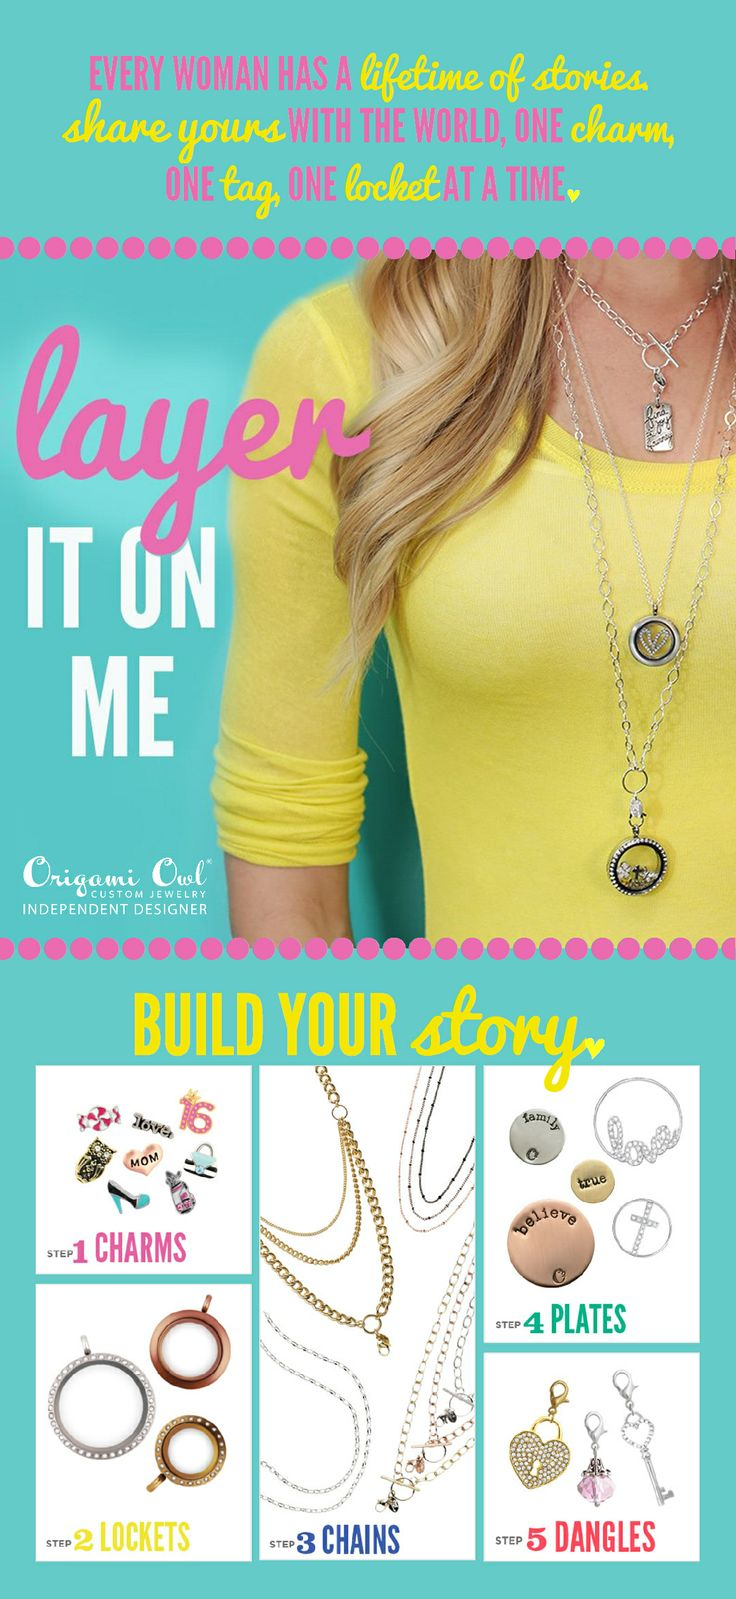 Origami Owl 2014 Spring Collection is now available so go check it out @ http://www.lorian.origamiowl.com